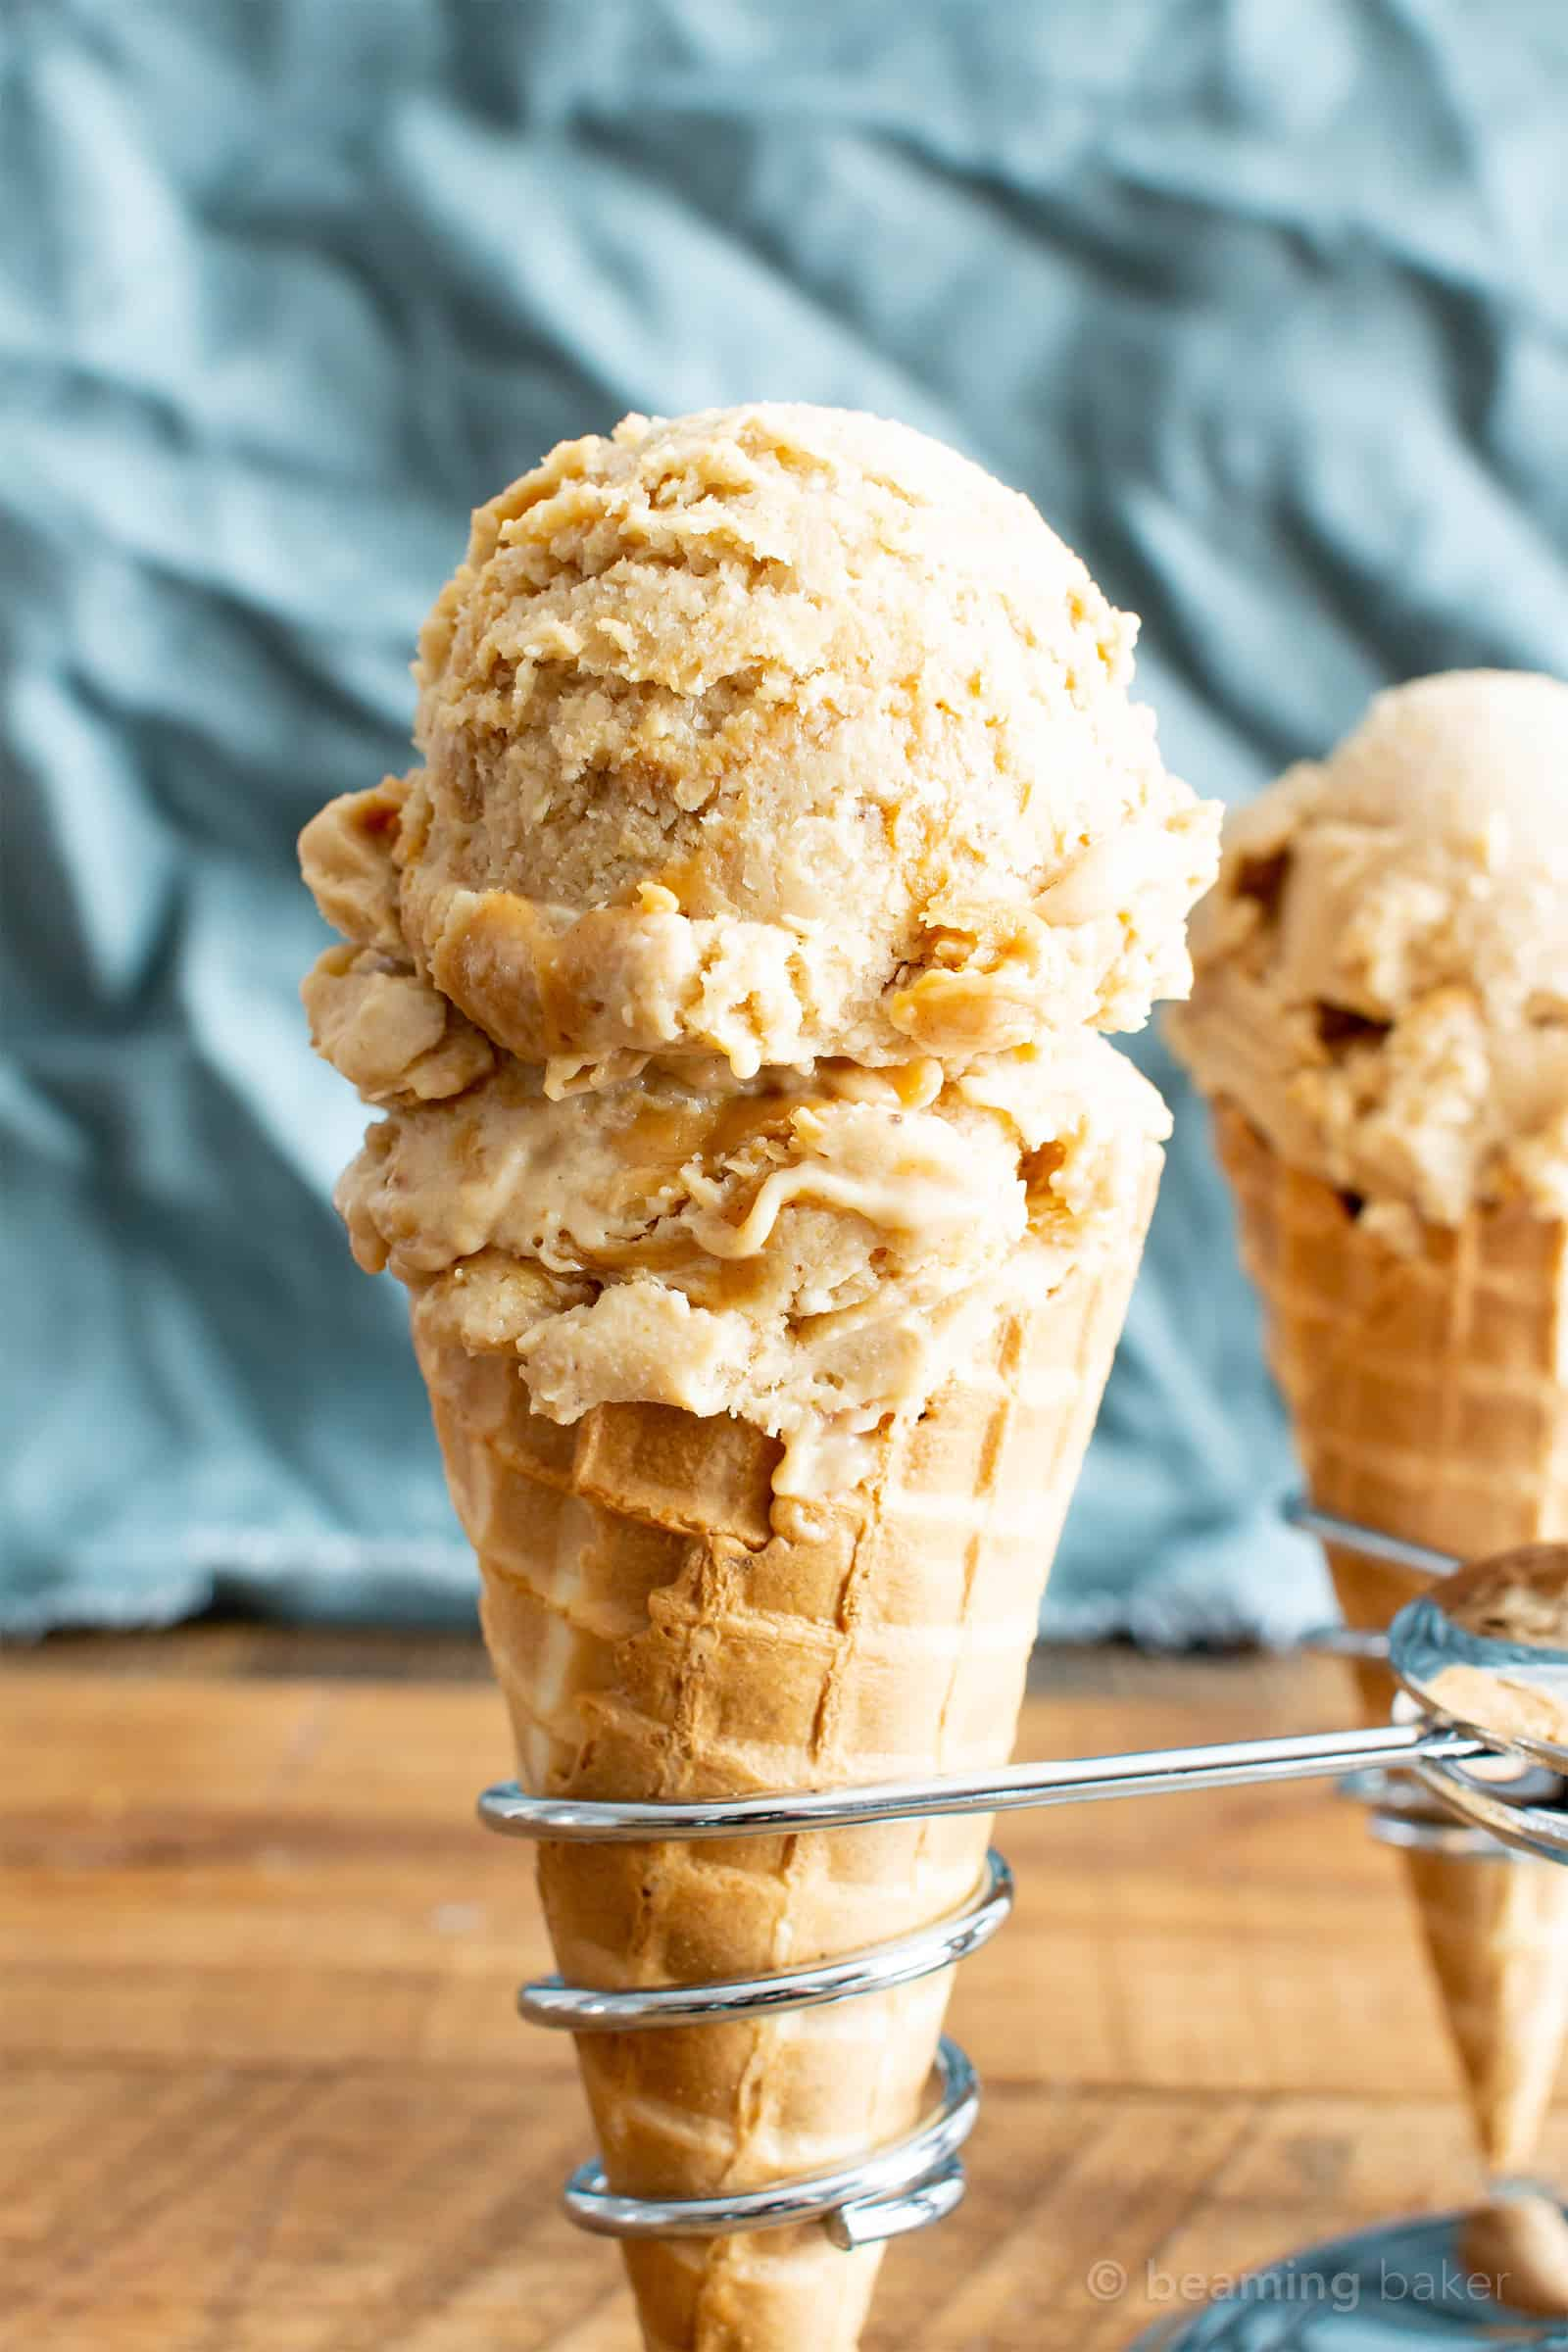 4 Ingredient Banana Peanut Butter Swirl Ice Cream (V, GF): my favorite easy, no-churn recipe for delightfully sweet and creamy vegan ice cream bursting with peanut butter flavor! #Vegan #GlutenFree #DairyFree #PeanutButter #Dessert #IceCream | Recipe on BeamingBaker.com